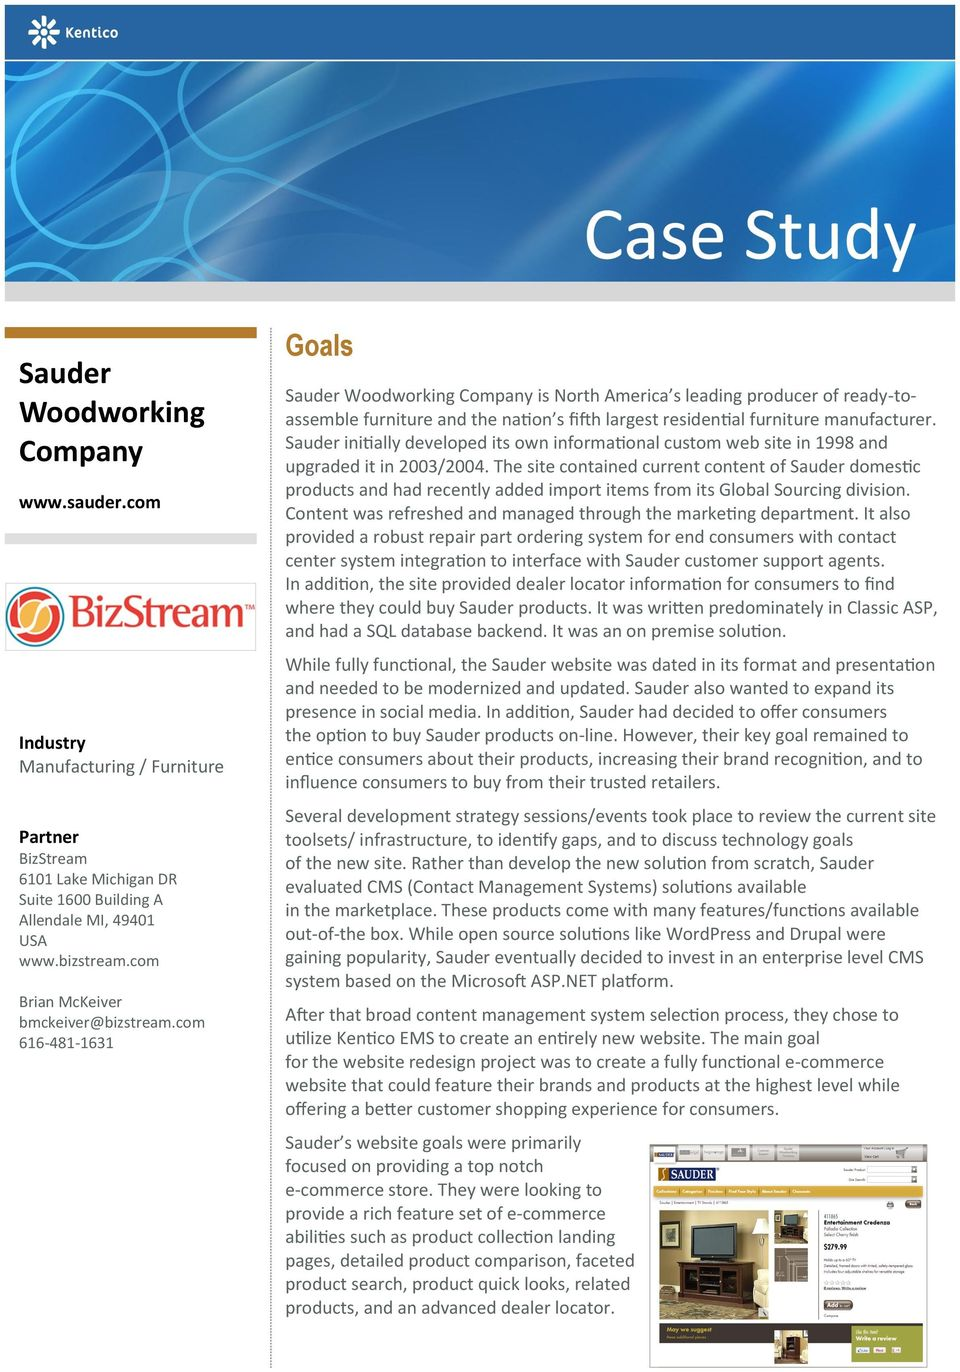 Sauder initially developed its own informational custom web site in 1998 and upgraded it in 2003/2004.